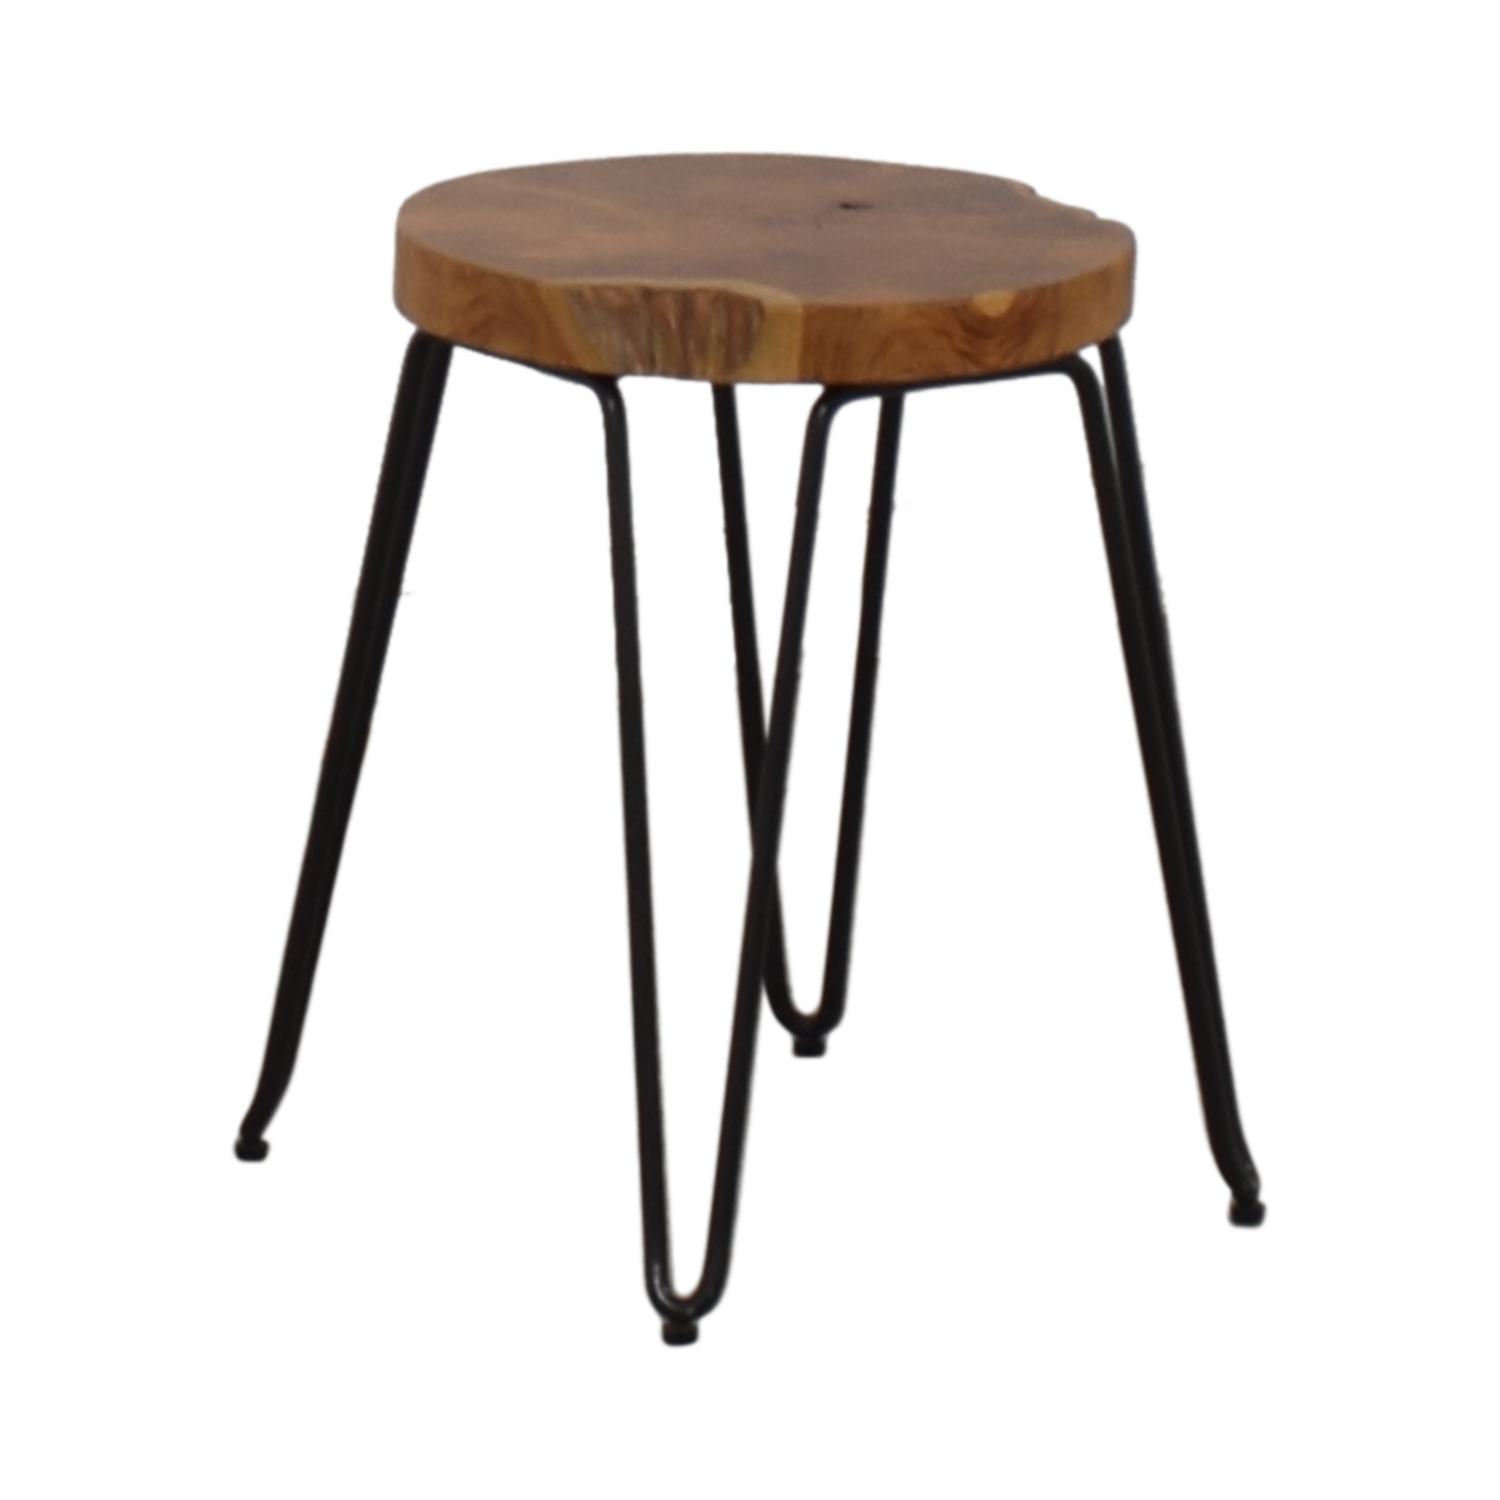 Crate & Barrel Distressed Wood Stool sale